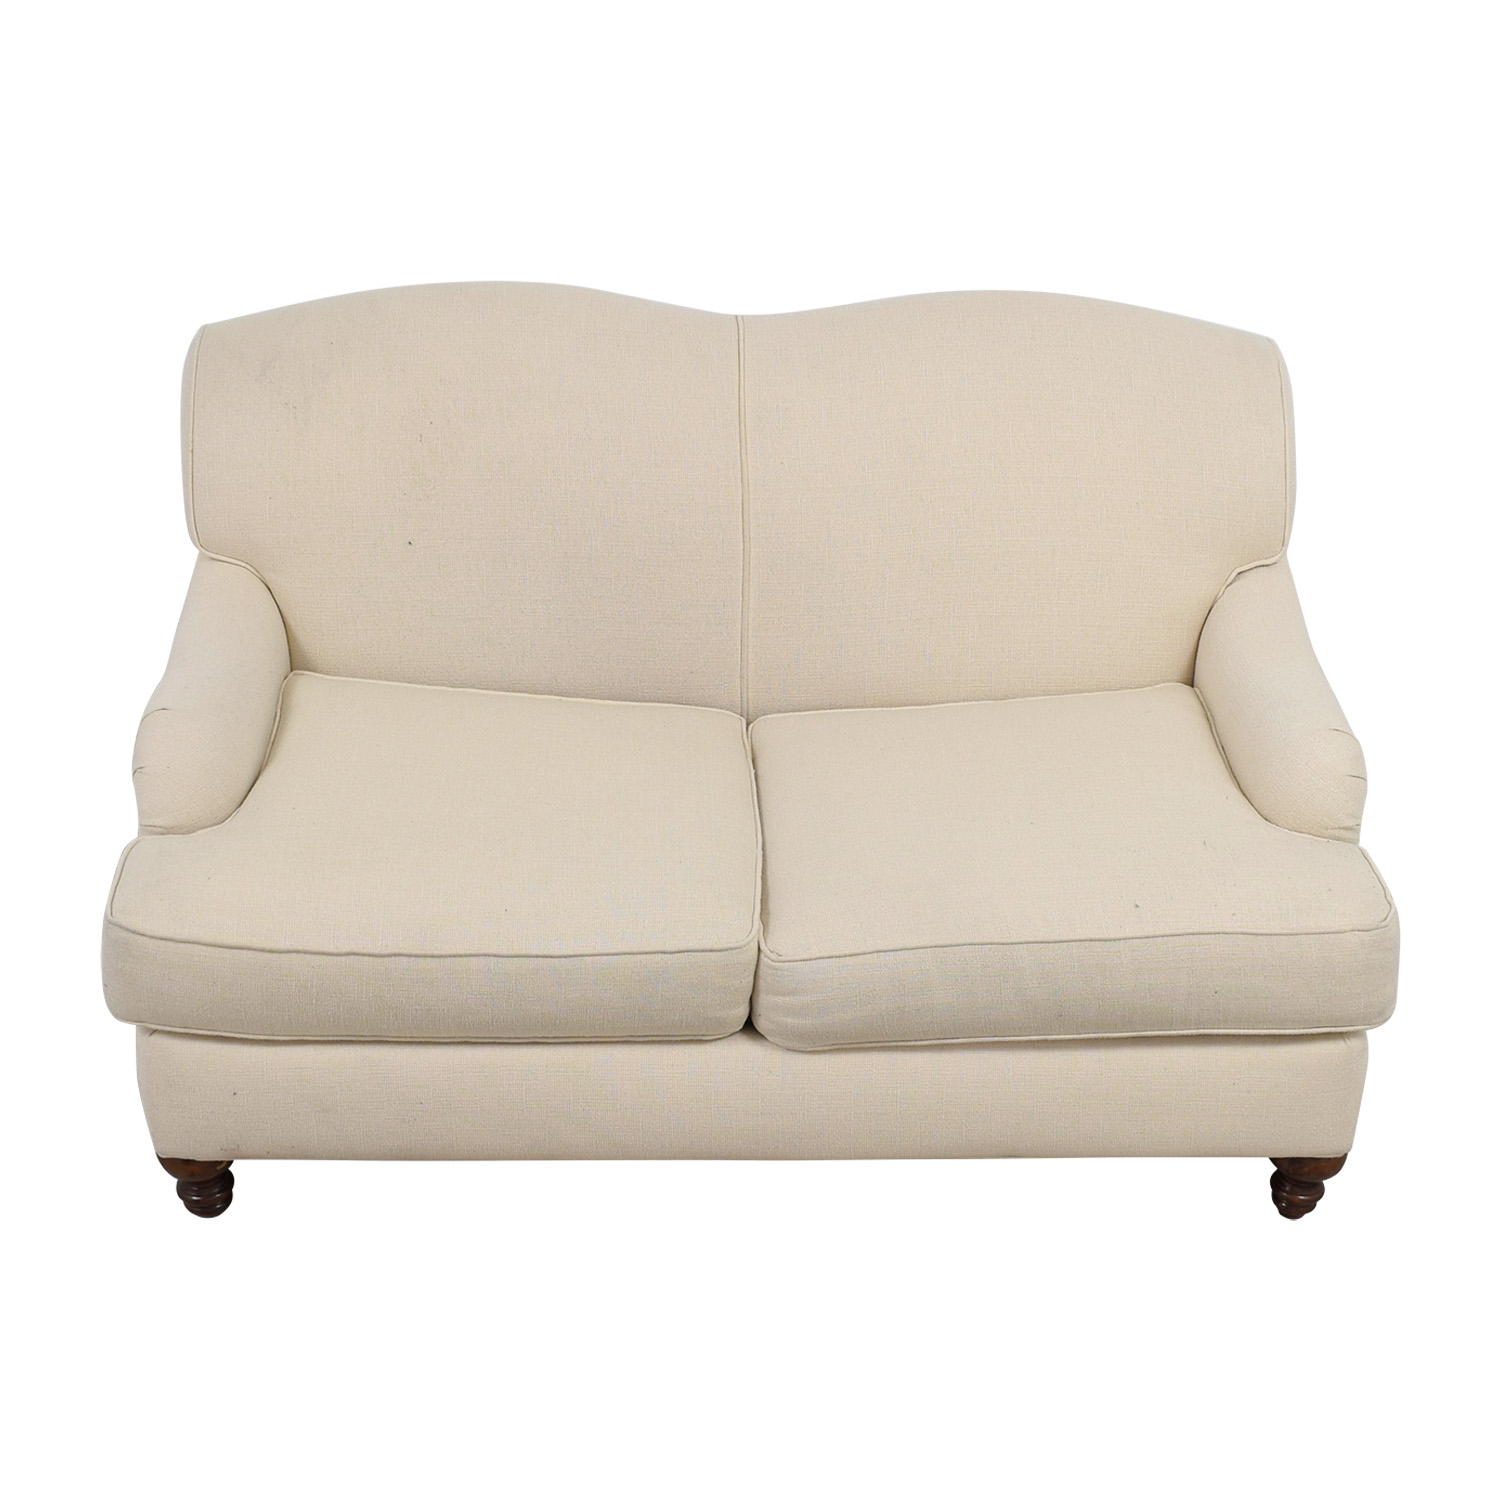 Bob Mills Furniture Cream Love Seat / Sofas